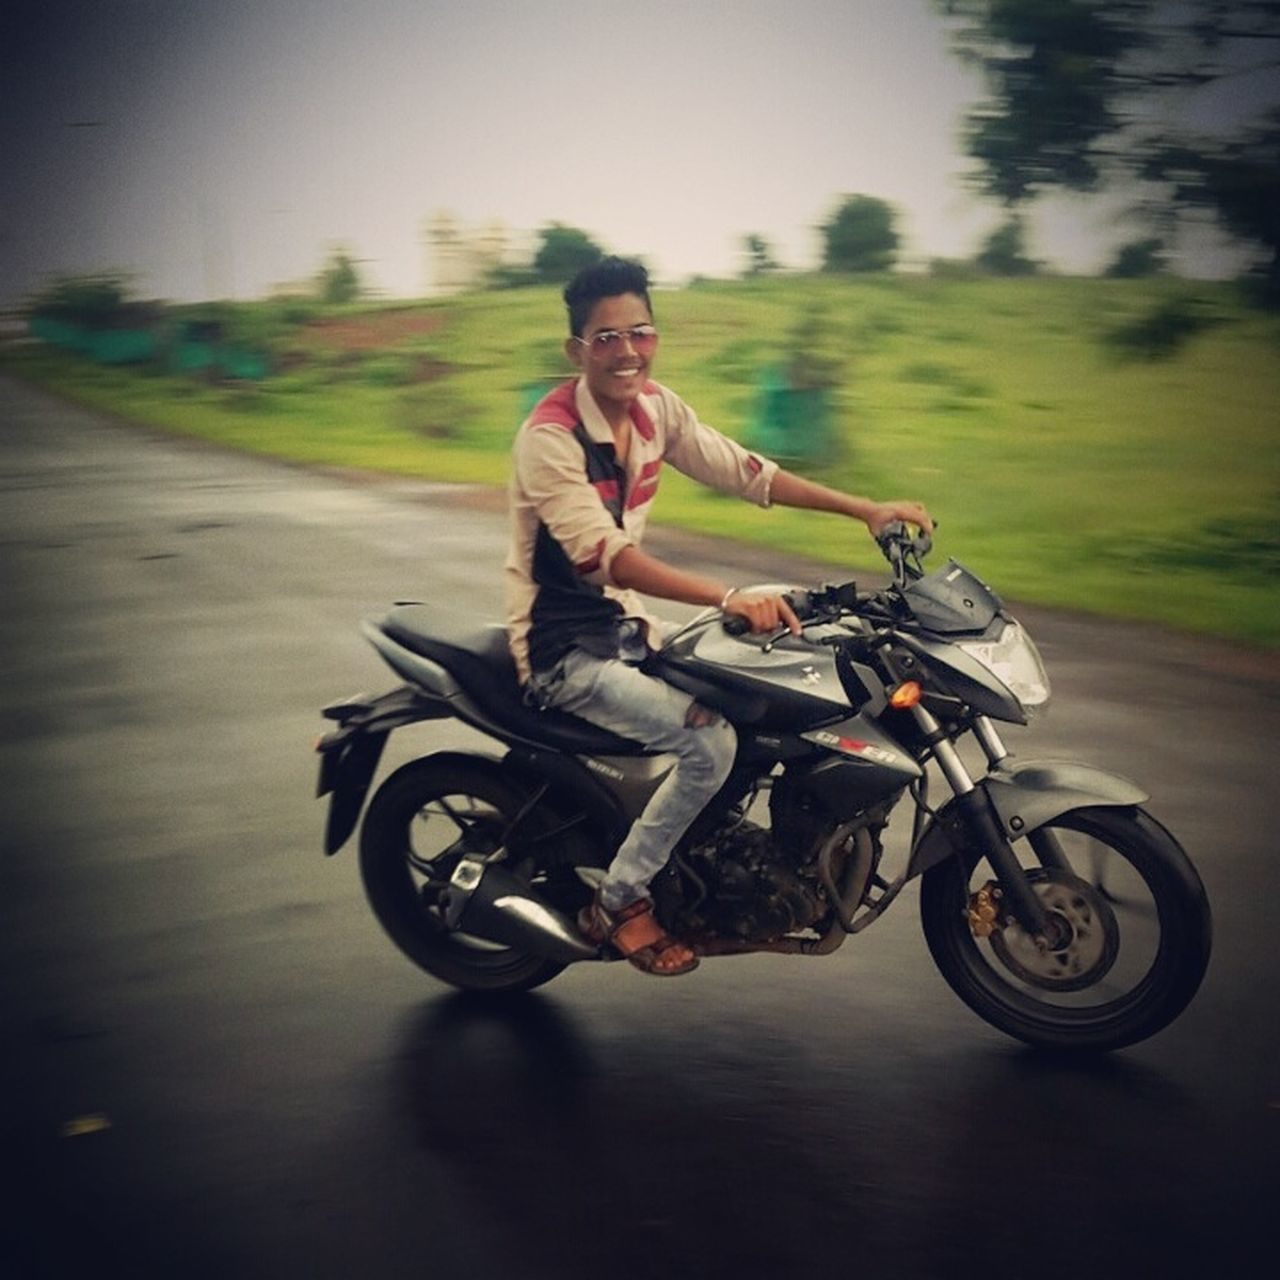 motorcycle, riding, transportation, real people, biker, one person, speed, full length, land vehicle, mode of transport, men, adventure, road, lifestyles, motion, motorcycle racing, helmet, outdoors, risk, day, motocross, young adult, sky, adult, people